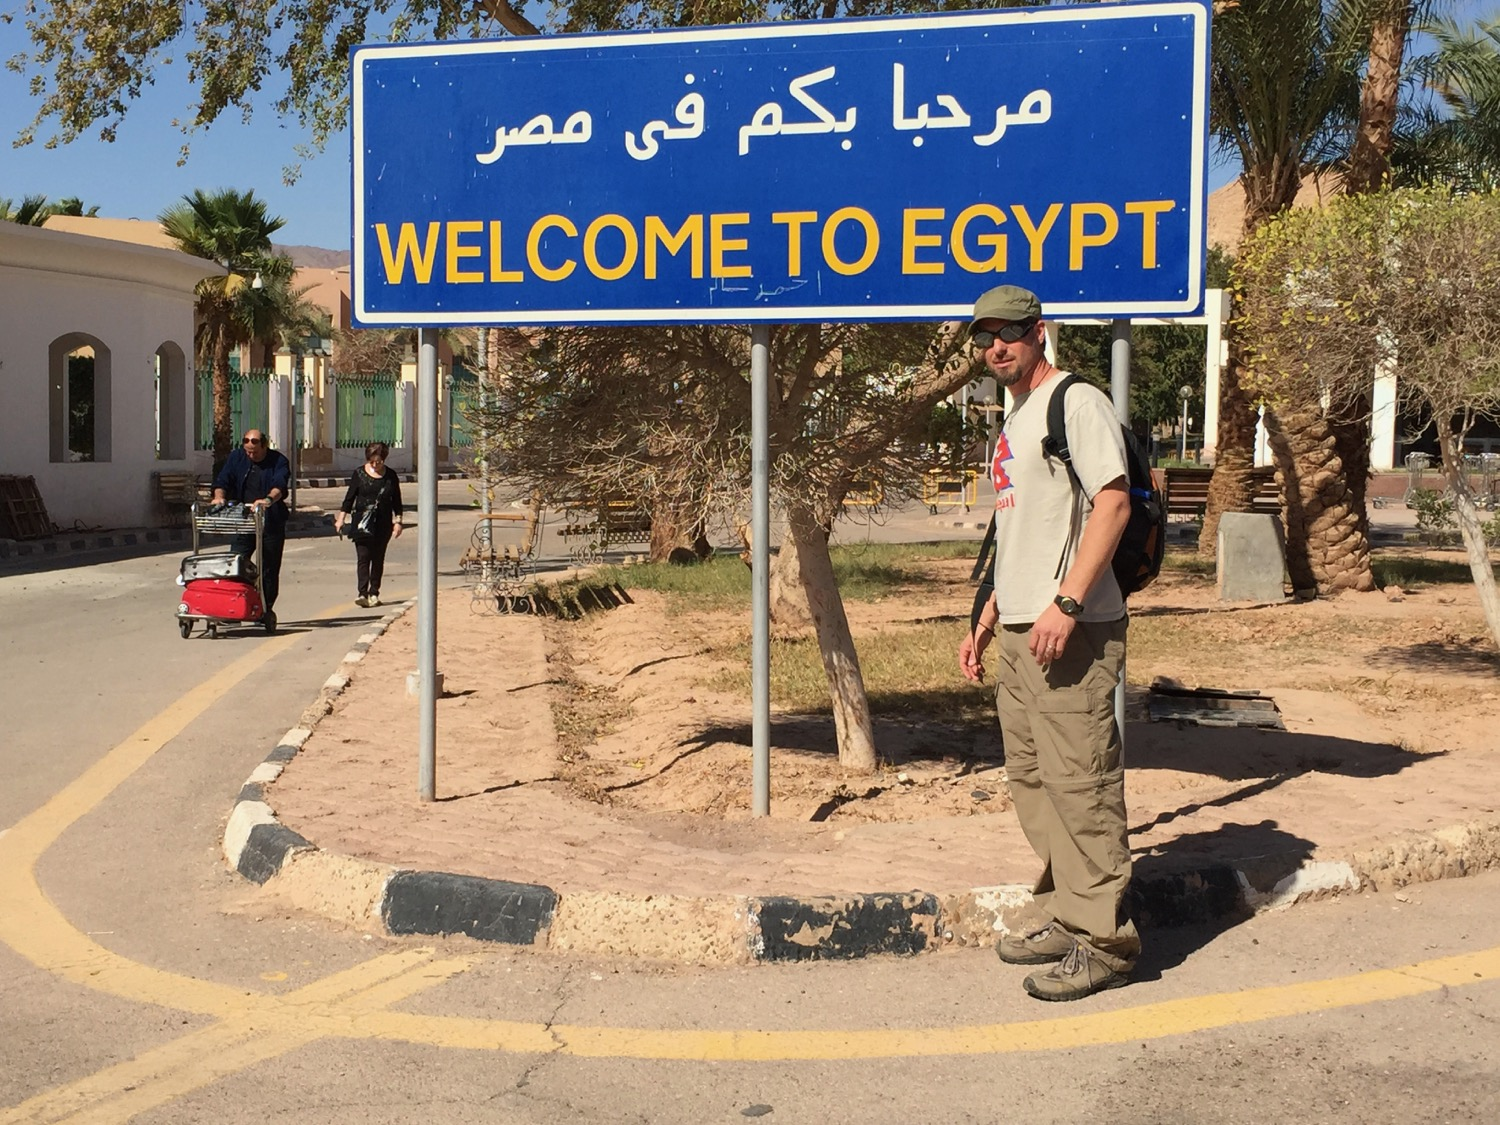 Today, Israelis can't cross the border into the Sinai, and the frontier settlement of Taba is as far as any tourist can go safely without a military escort.